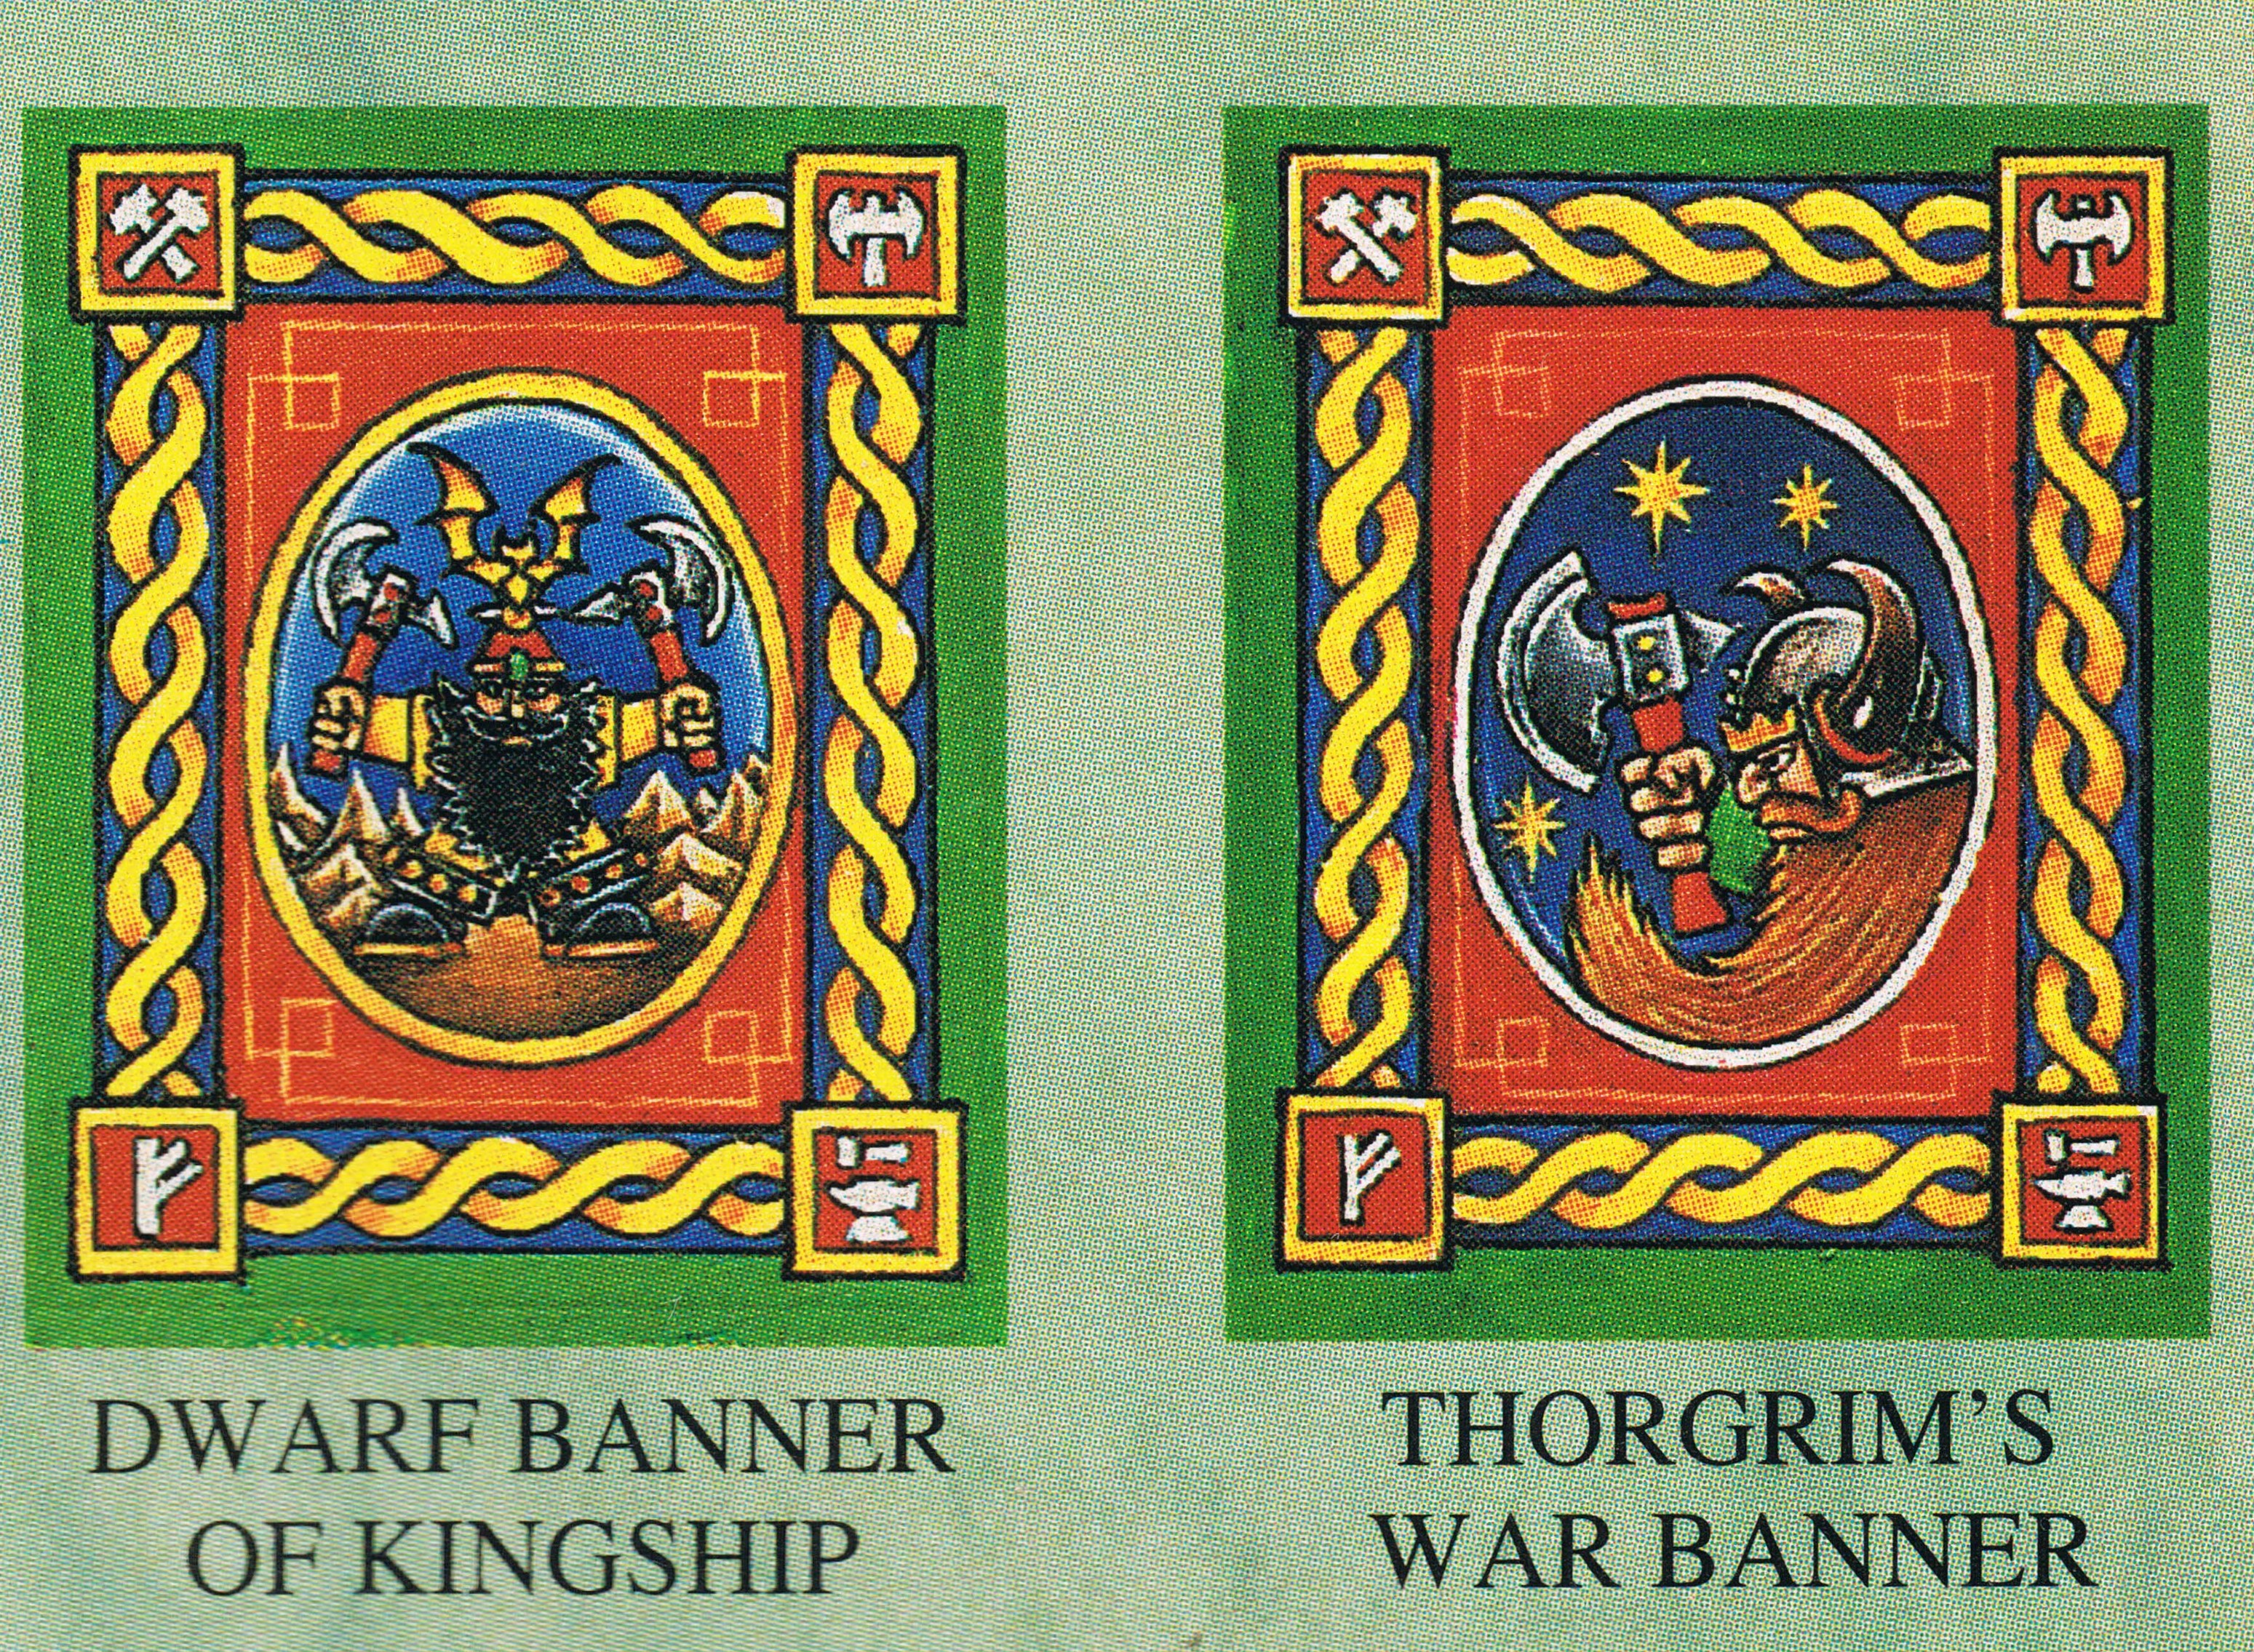 Dwarf throne of power banners